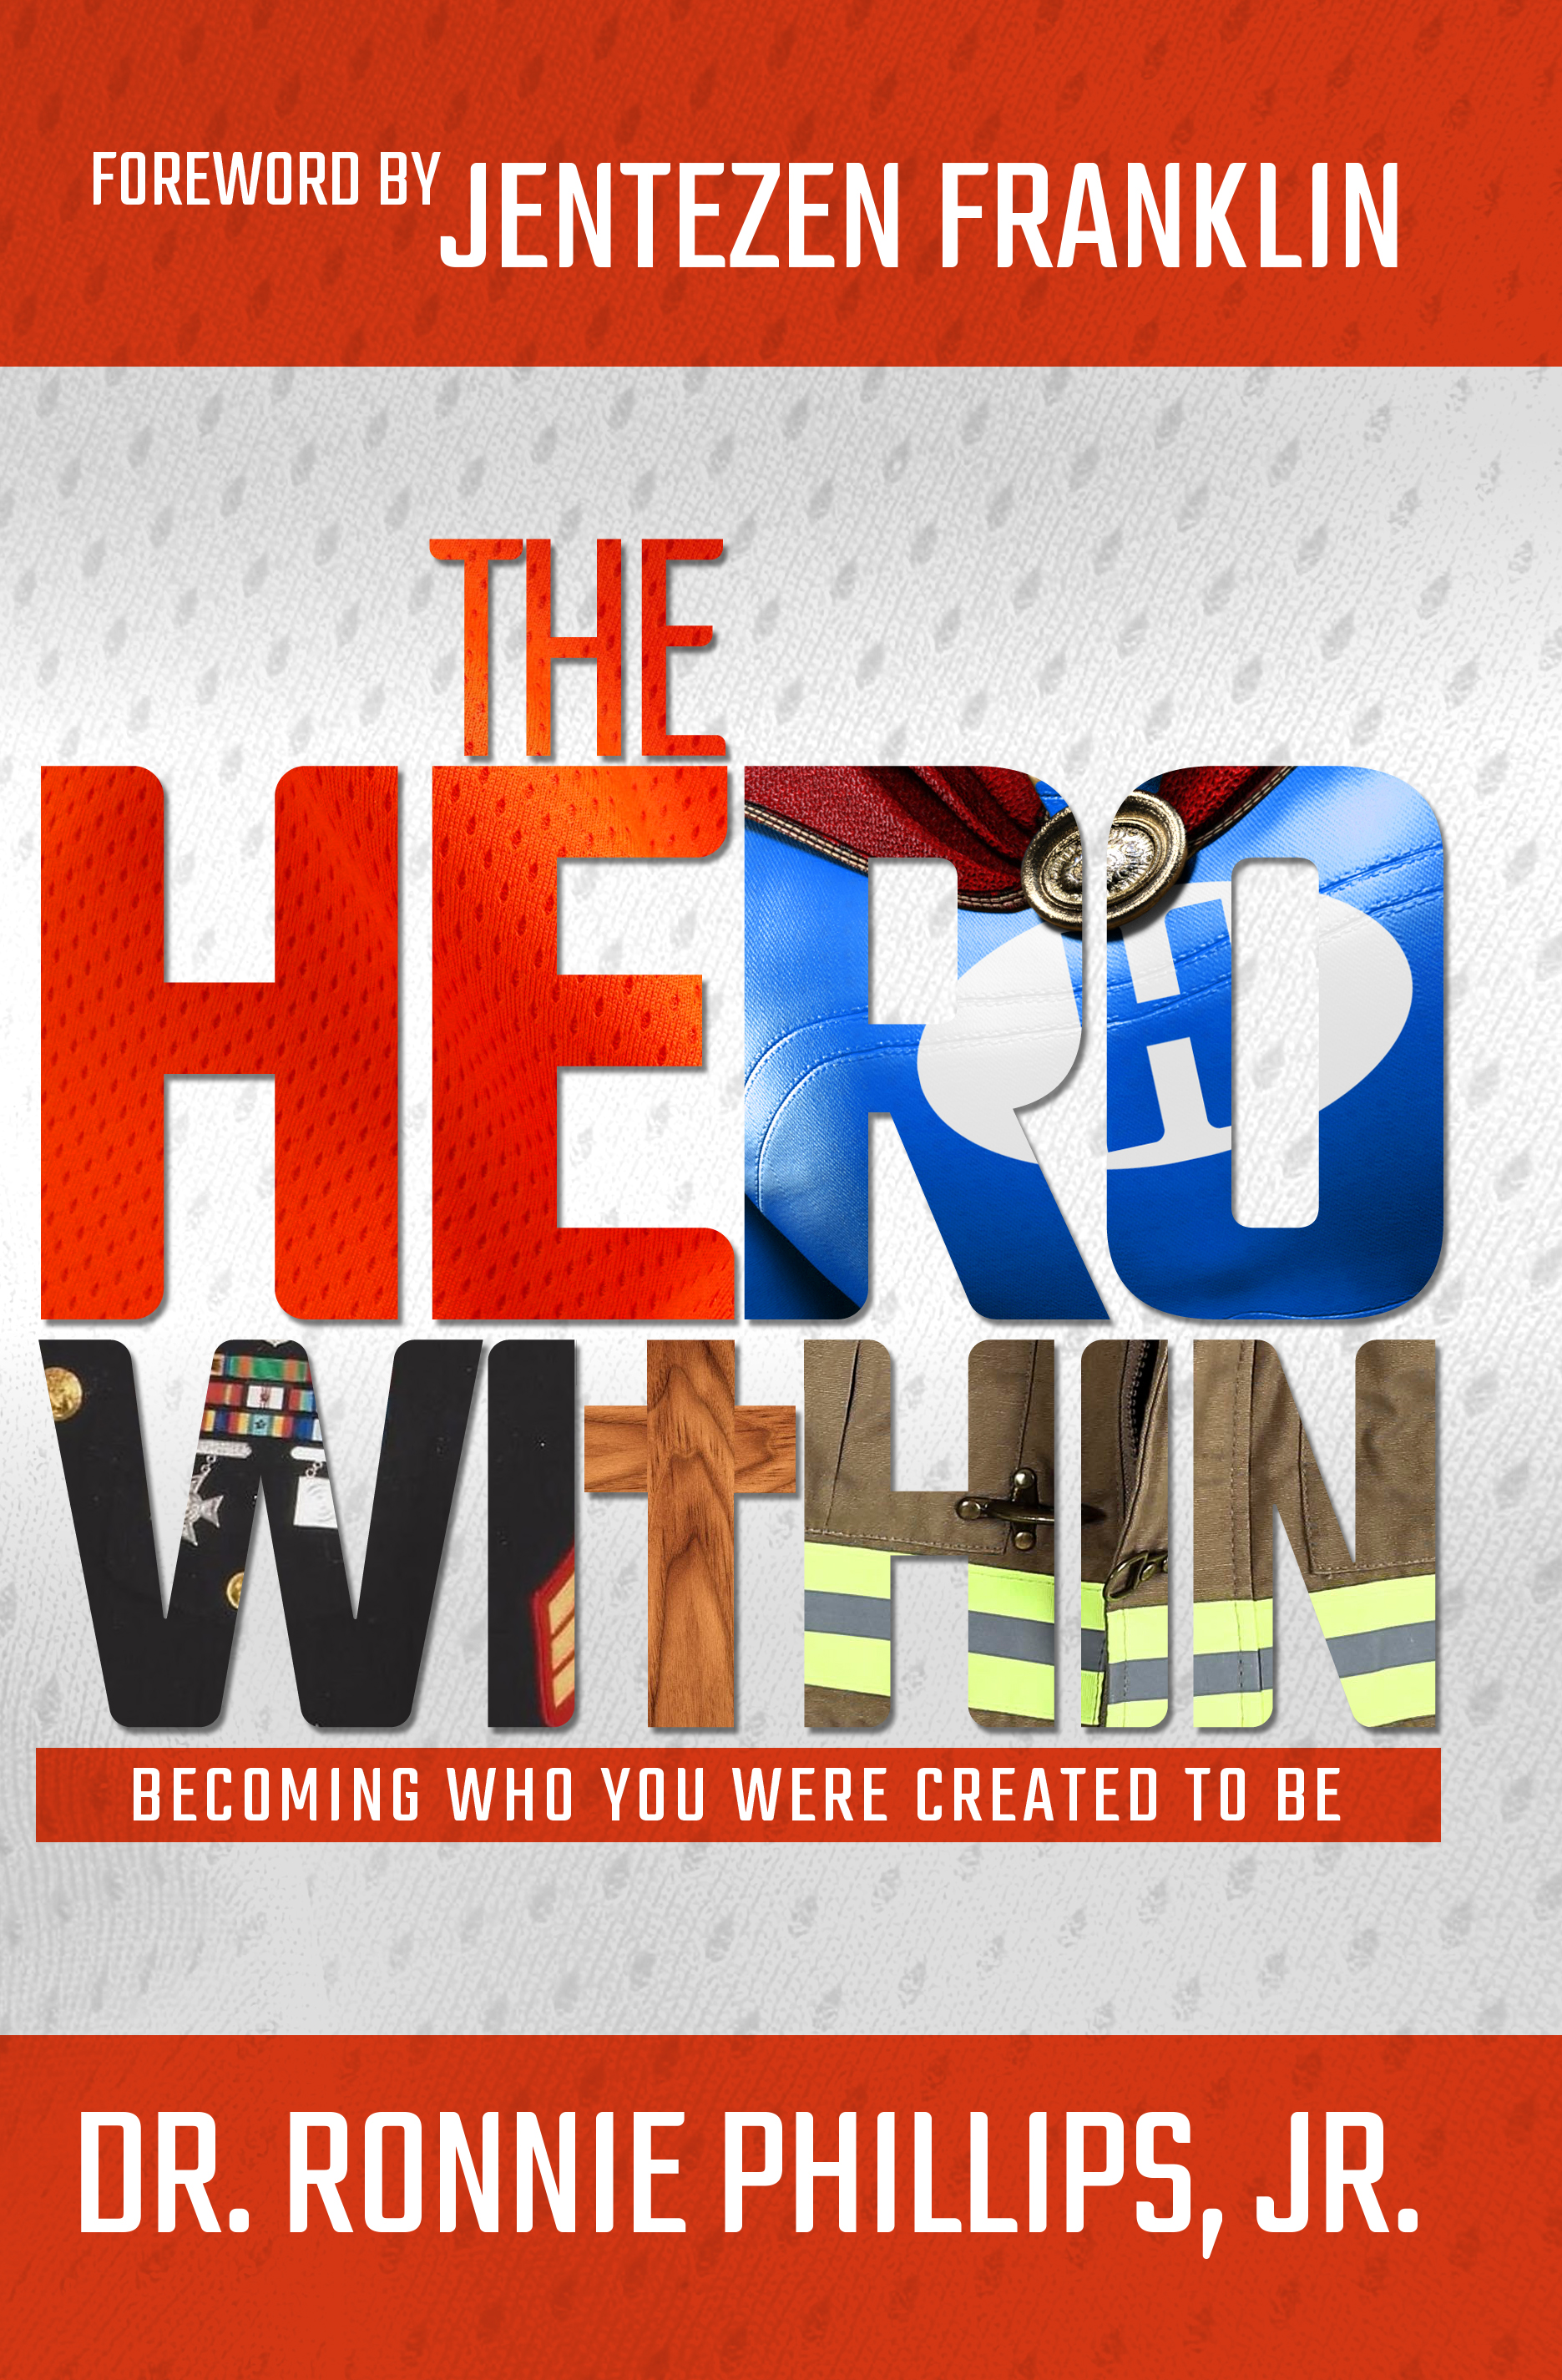 """DISCOVER THE HERO INSIDE OF YOU - It's time to wake the dream inside of us. If you know God, there is a superhero on the inside of you. The Holy Spirit is our Hero within, and He puts His """"super"""" on our """"natural"""" to help us live supernatural lives that we could only once dream about.God has called us to live an extraordinary life and His anointing (the Hero within) enables us to accomplish great things. Aren't you ready to activate your hero within and be all that you were created to be?It's time to take the lid off. It's time to reclaim the supernatural. It's time to let the Hero within loose to do what He wants to do through you and me as we yield to His fullness. It's time to let our Hero within shape us into the people He always intended for us to be. I want the superhero within you to be radically and completely unleashed in your everyday life, turning mere existence into an adventure. Are you ready? Then tie your cape on and let's fly!PRE-ORDER PASTOR RONNIE'S NEW BOOK """"THE HERO WITHIN"""" AND GET 4 FREE COMPANION TEACHINGS."""